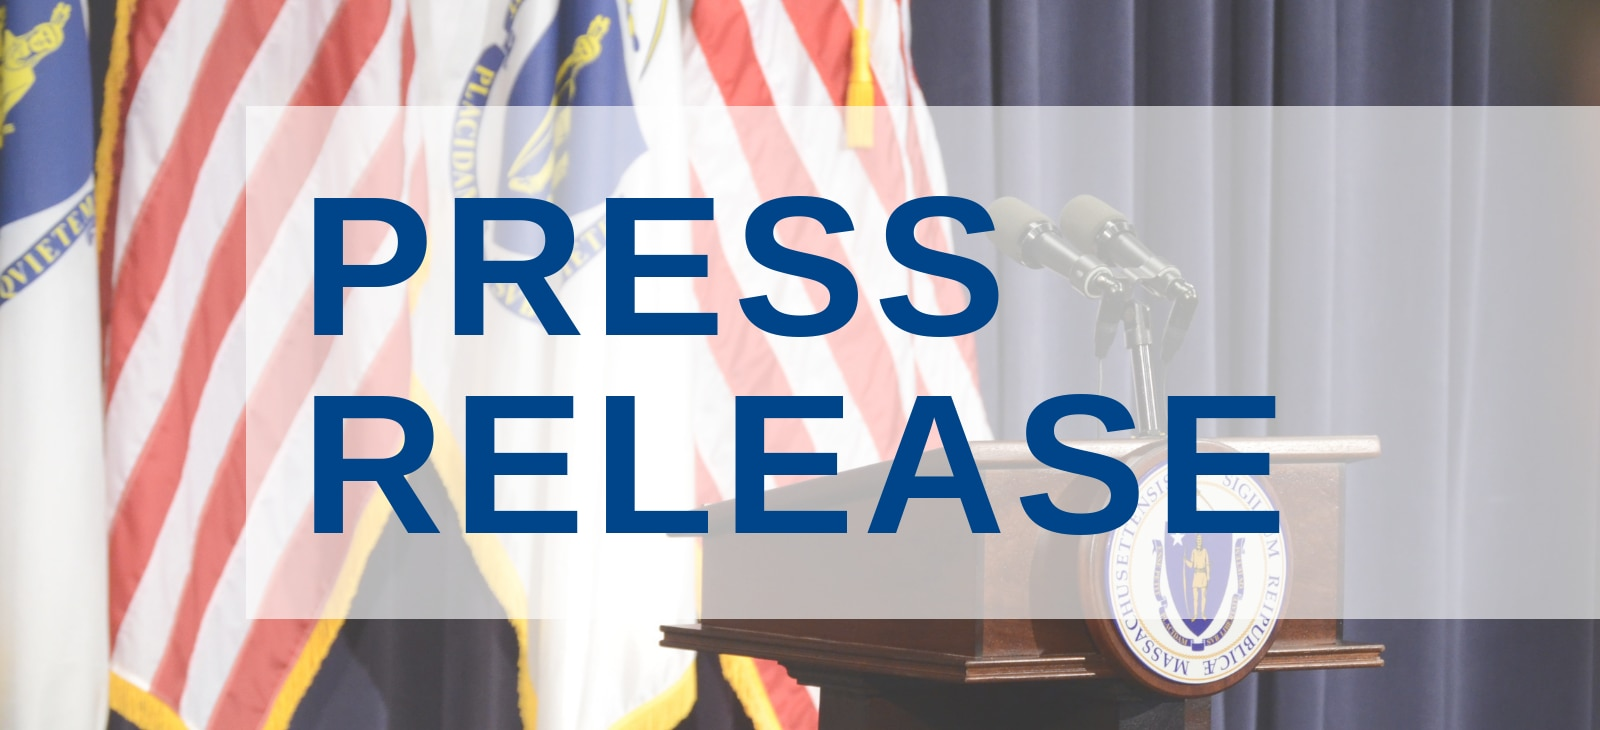 Governor Baker Nominates Allison Cole as Clerk Magistrate of the Housing Court and Jennifer McNulty as Associate Justice of the Juvenile Court